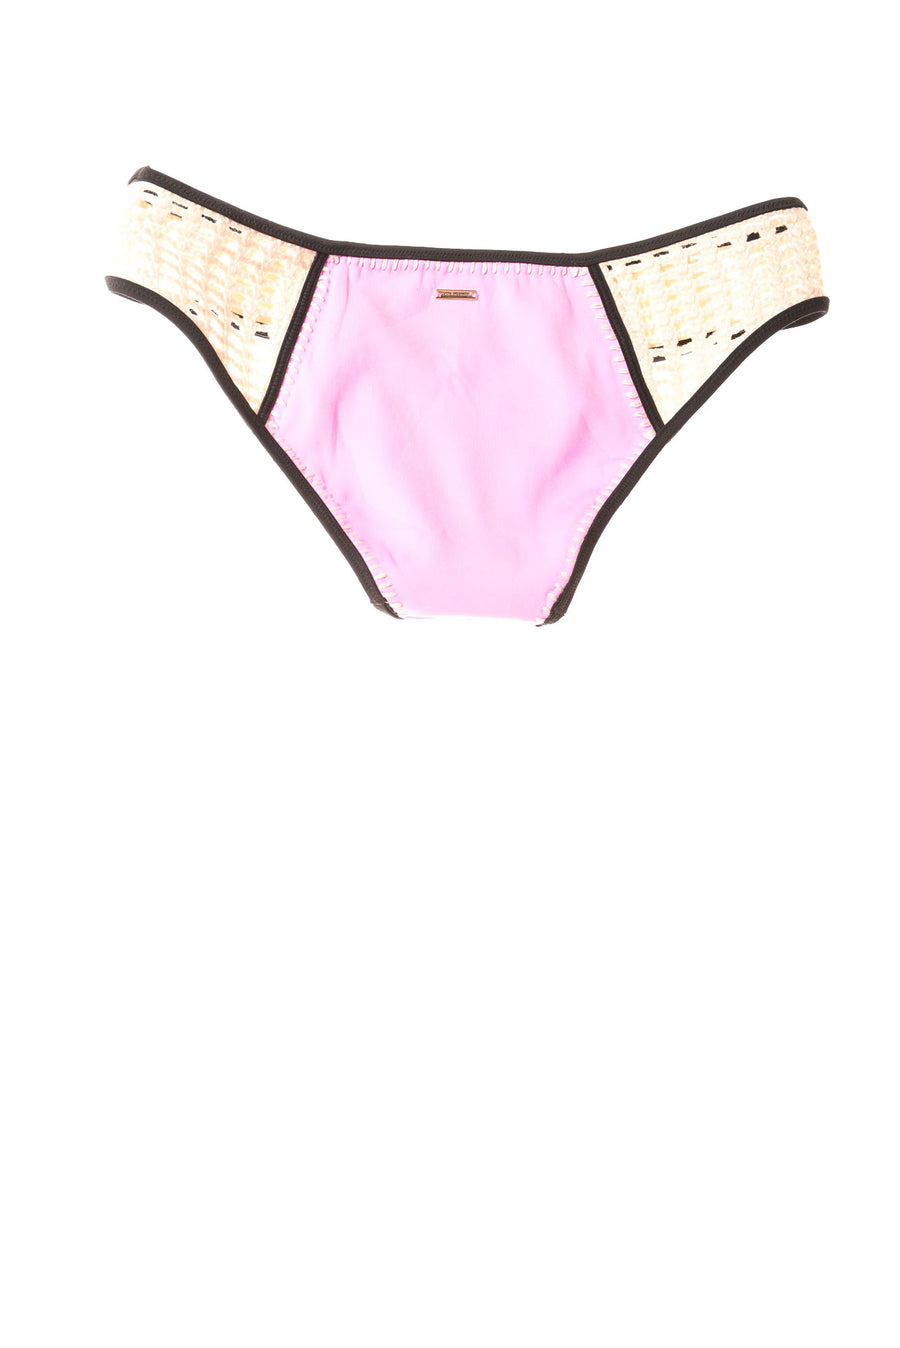 NEW Victoria Secret Swim Women's Swimwear Small Pink / Tan